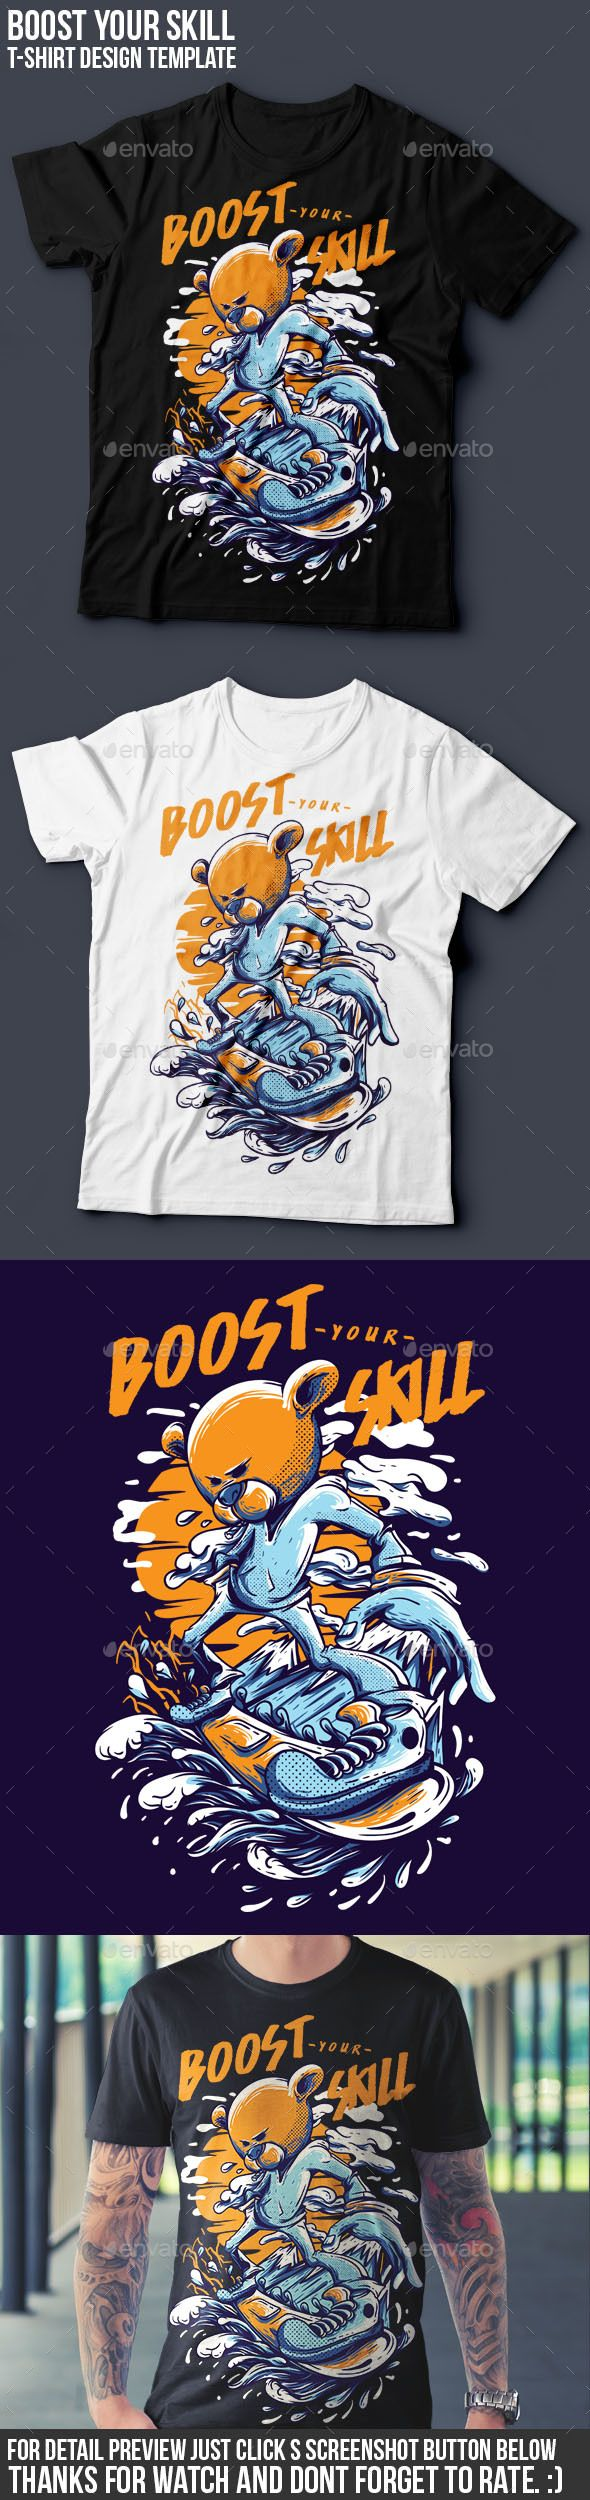 Boost Your Skill T-Shirt Design Template PSD. Download here: http://graphicriver.net/item/boost-your-skill-tshirt-design/16048463?ref=ksioks